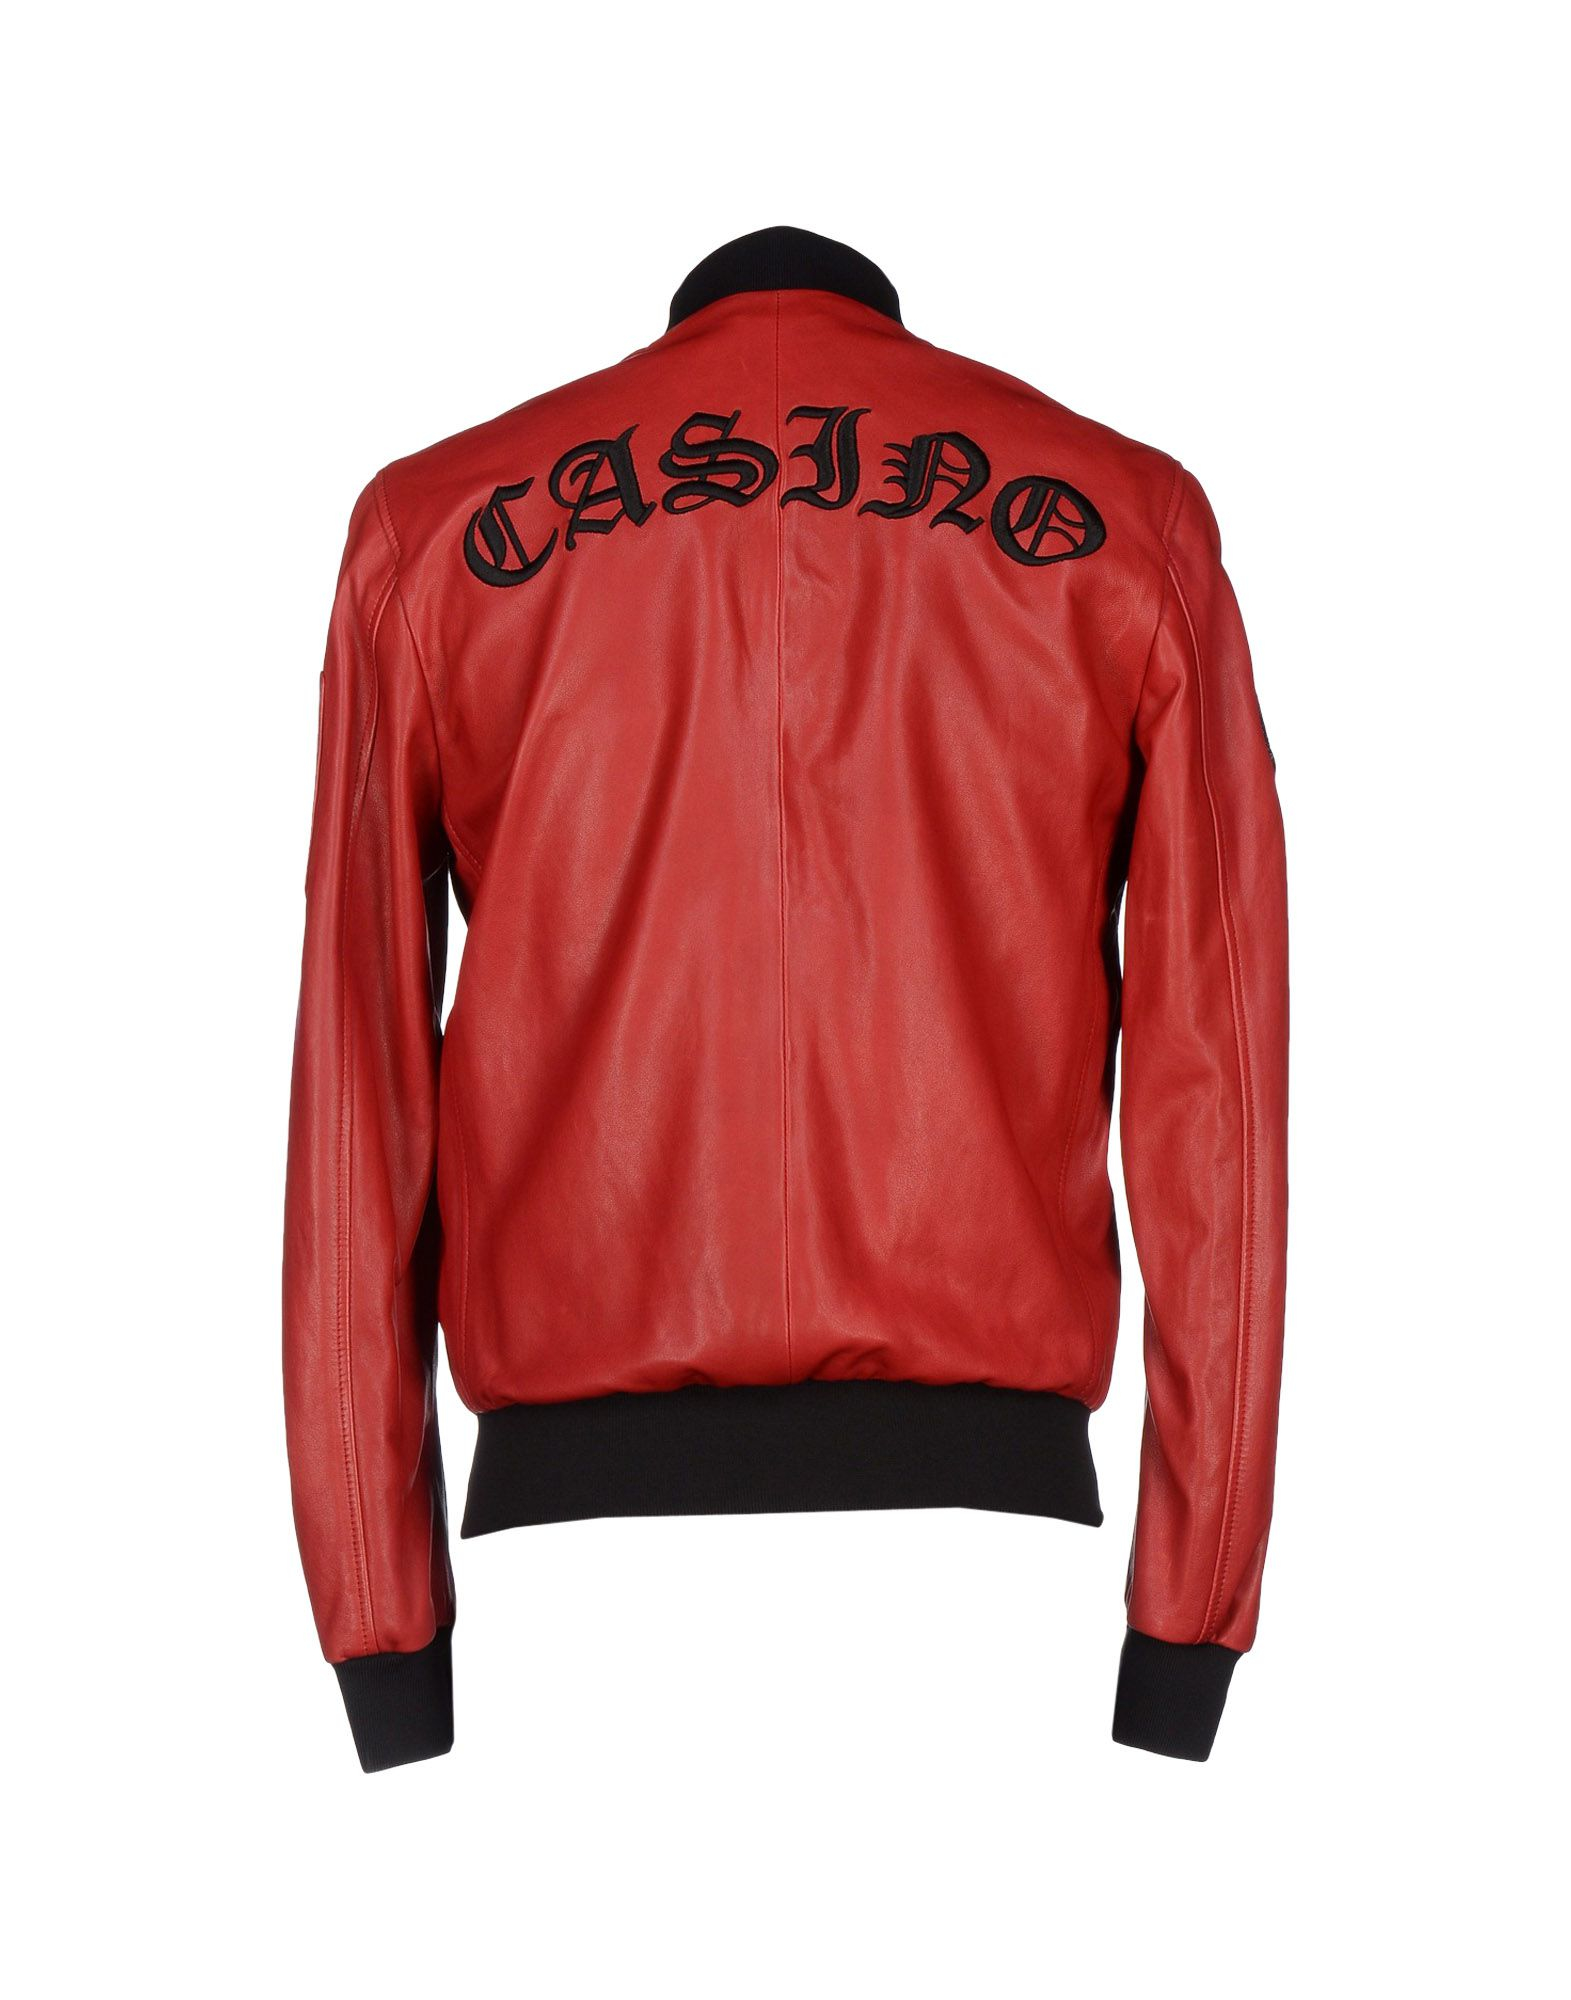 philipp plein jacket in red for men lyst. Black Bedroom Furniture Sets. Home Design Ideas